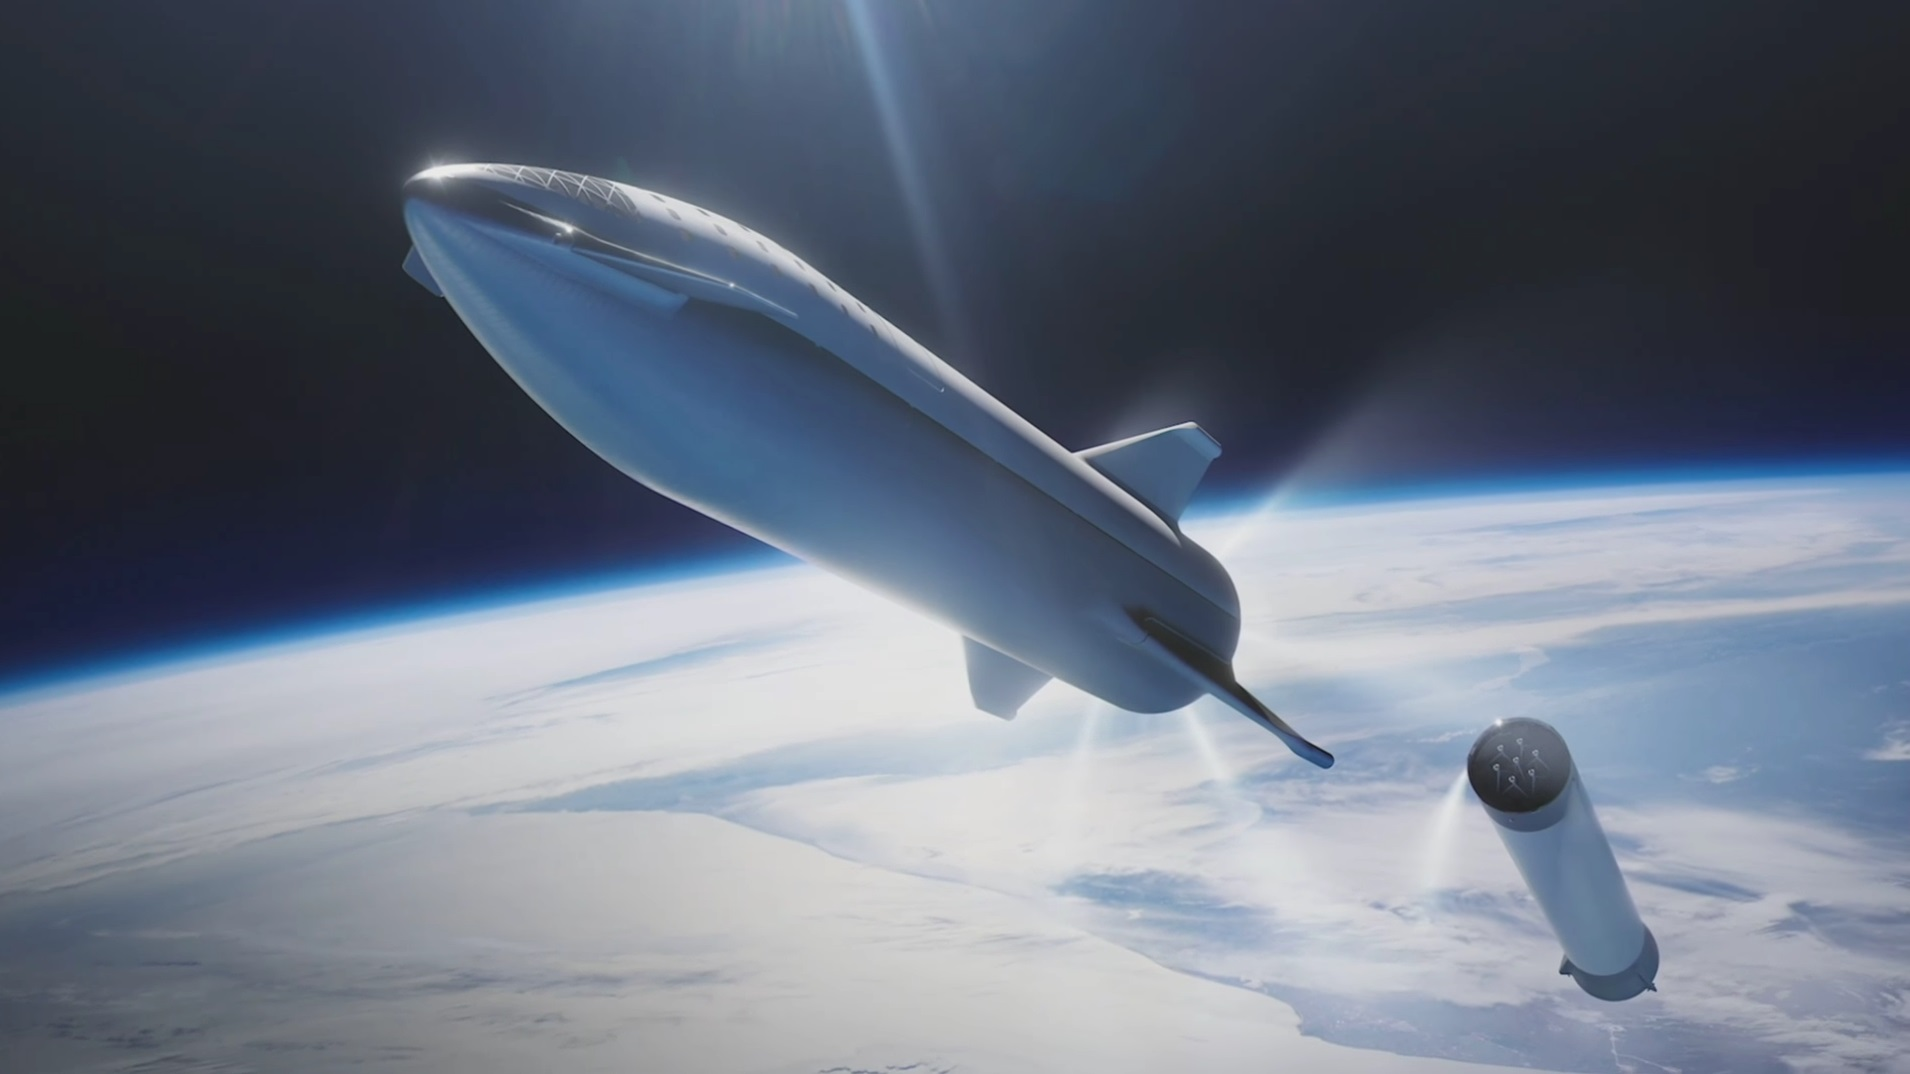 techcrunch.com - Kirsten Korosec - Elon Musk just renamed SpaceX's Big F** Rocket